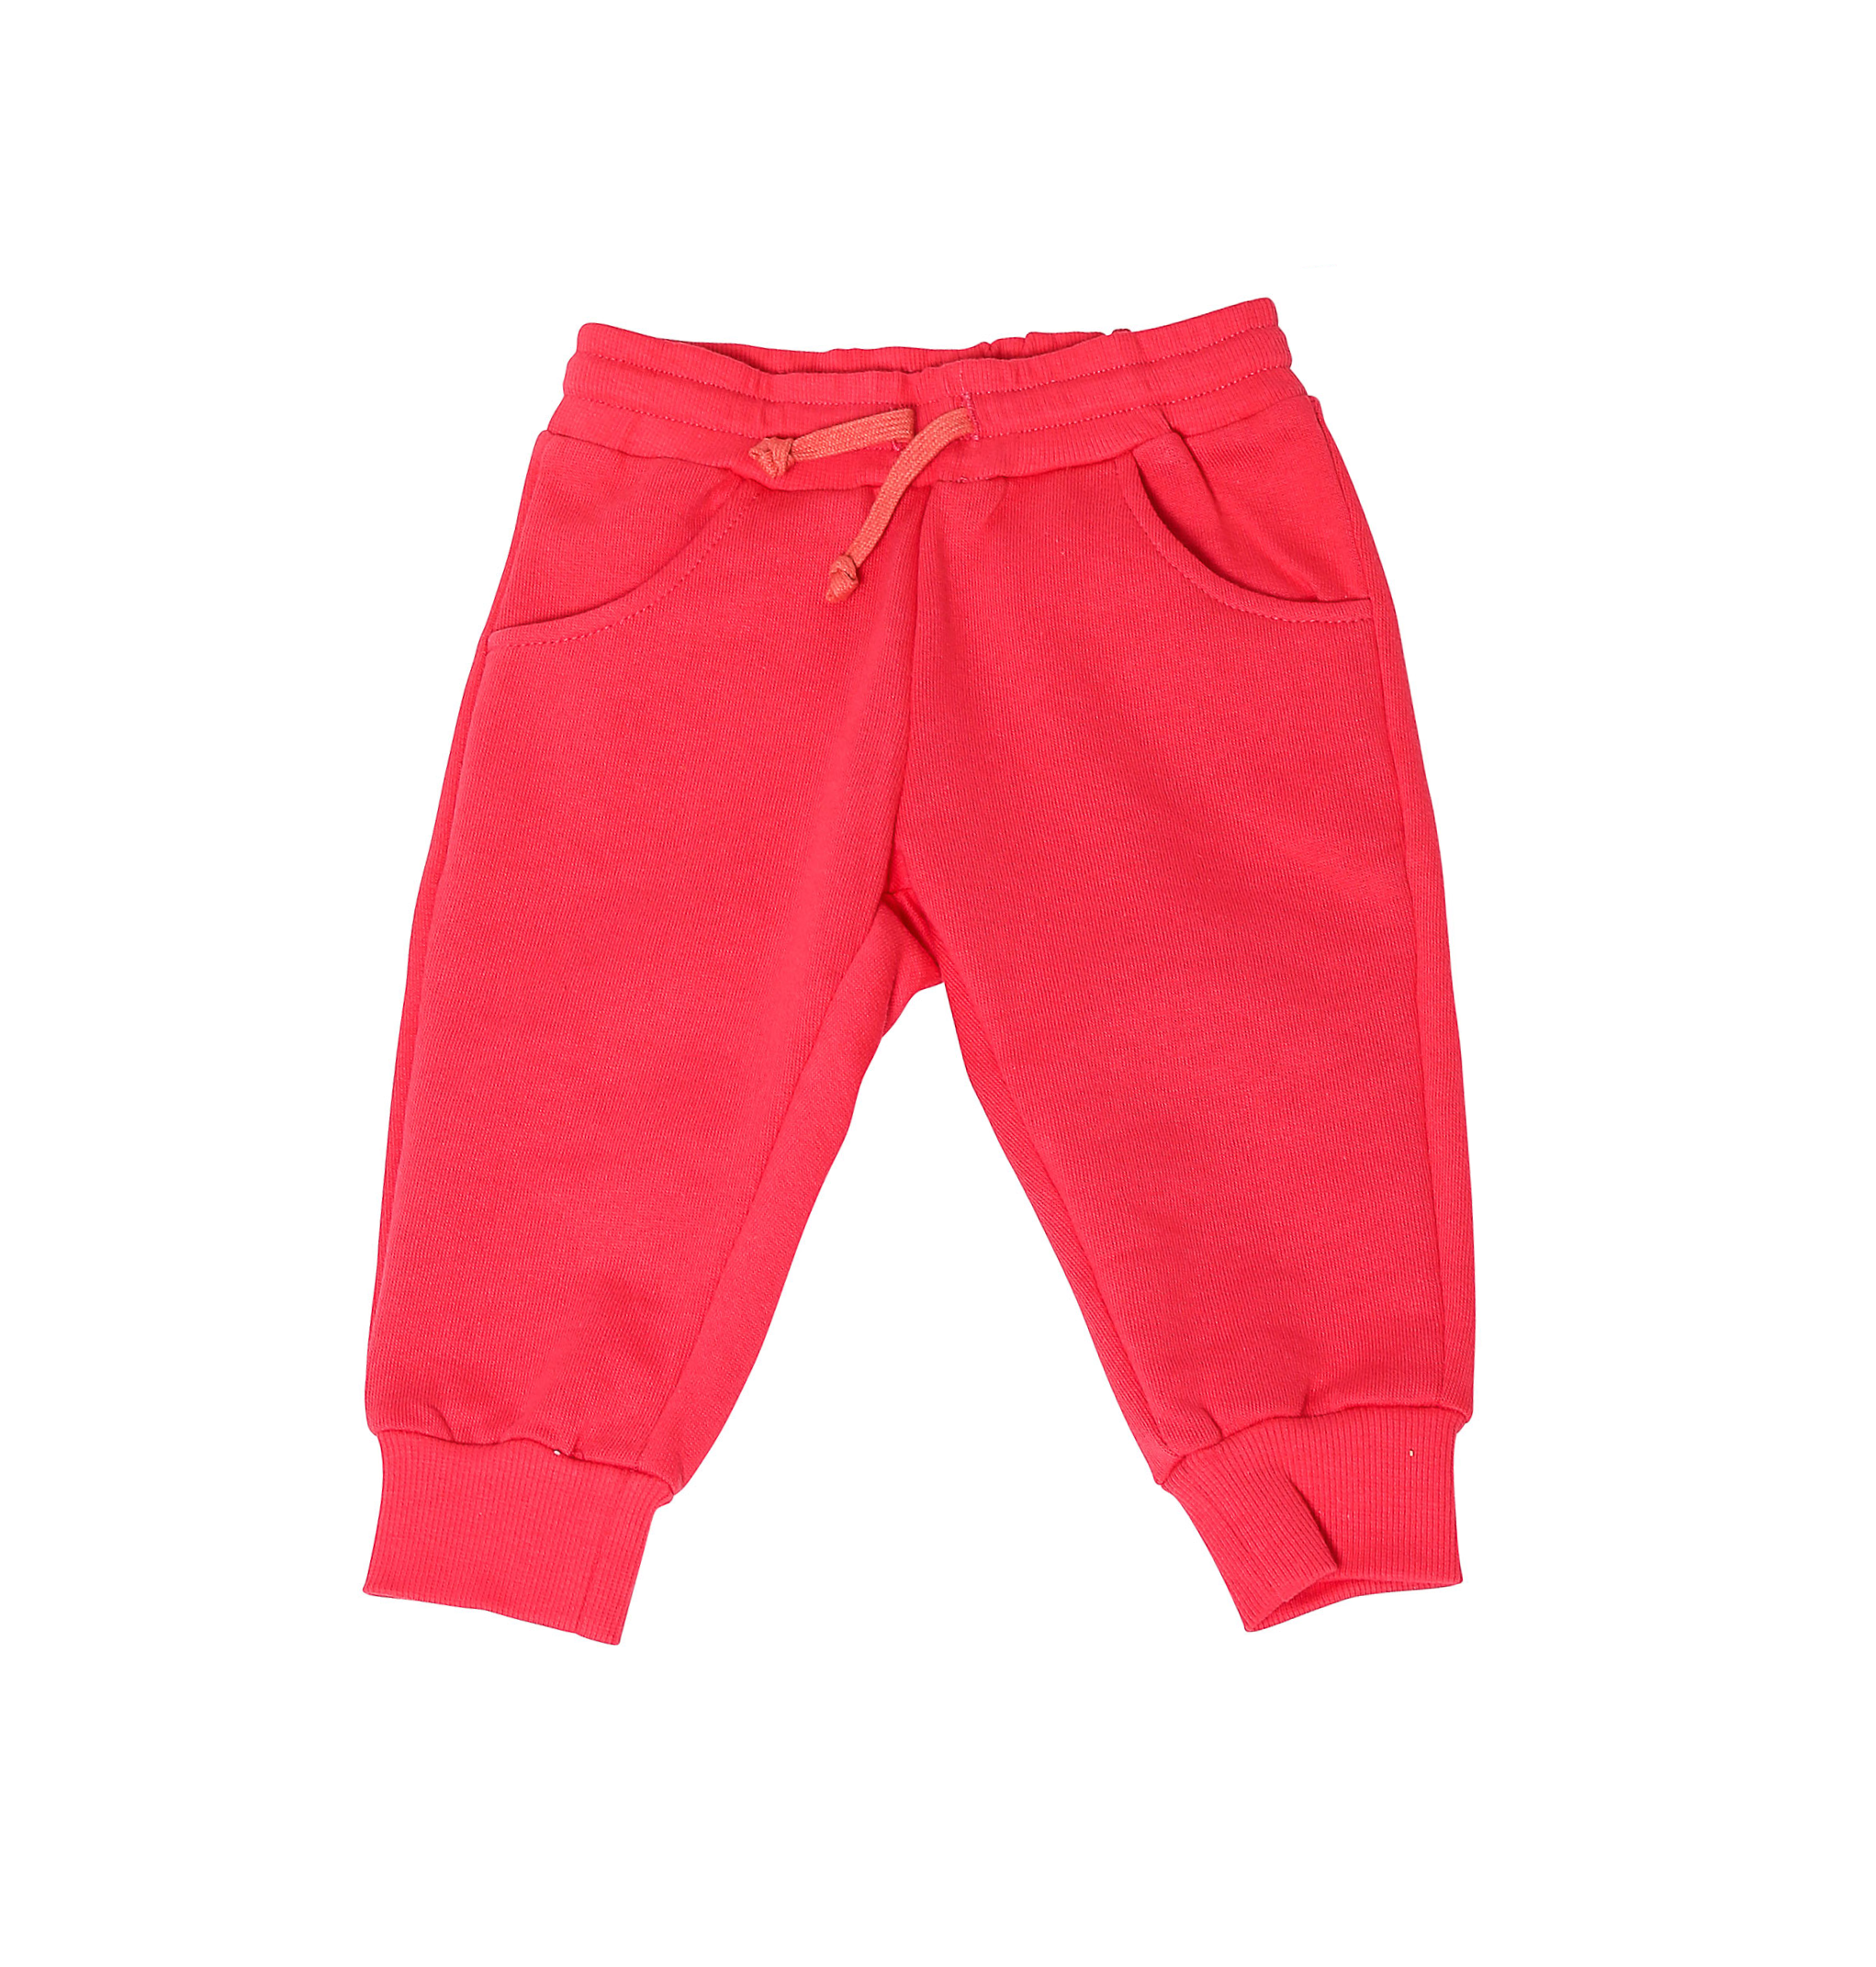 Mikijs Pants Organic Cotton Red 2